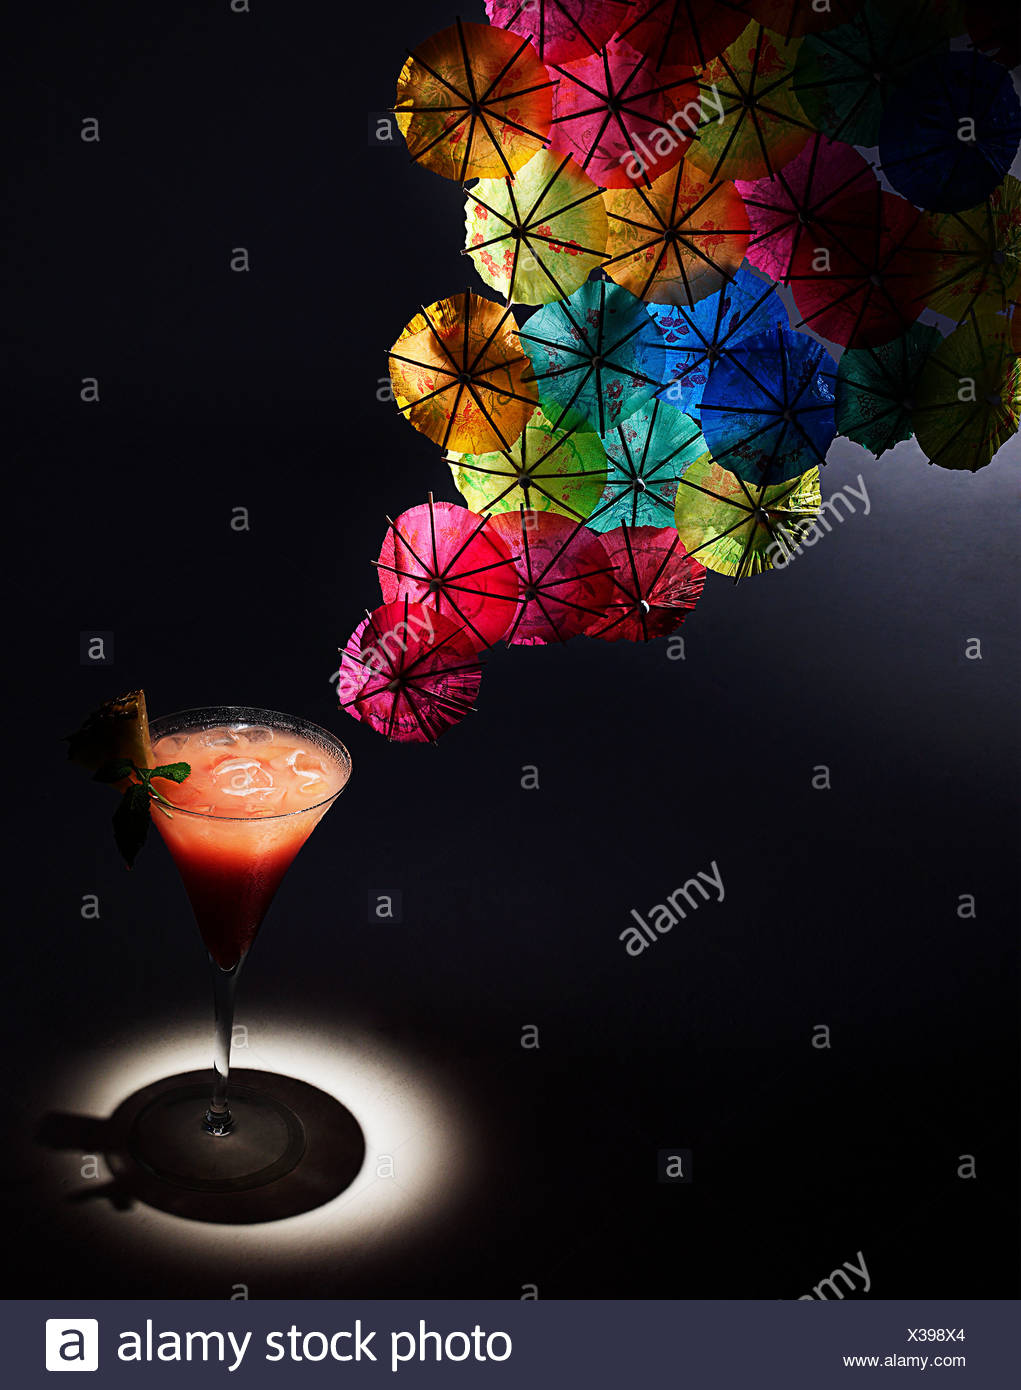 Cocktail and colourful cocktail umbrellas, studio shot - Stock Image